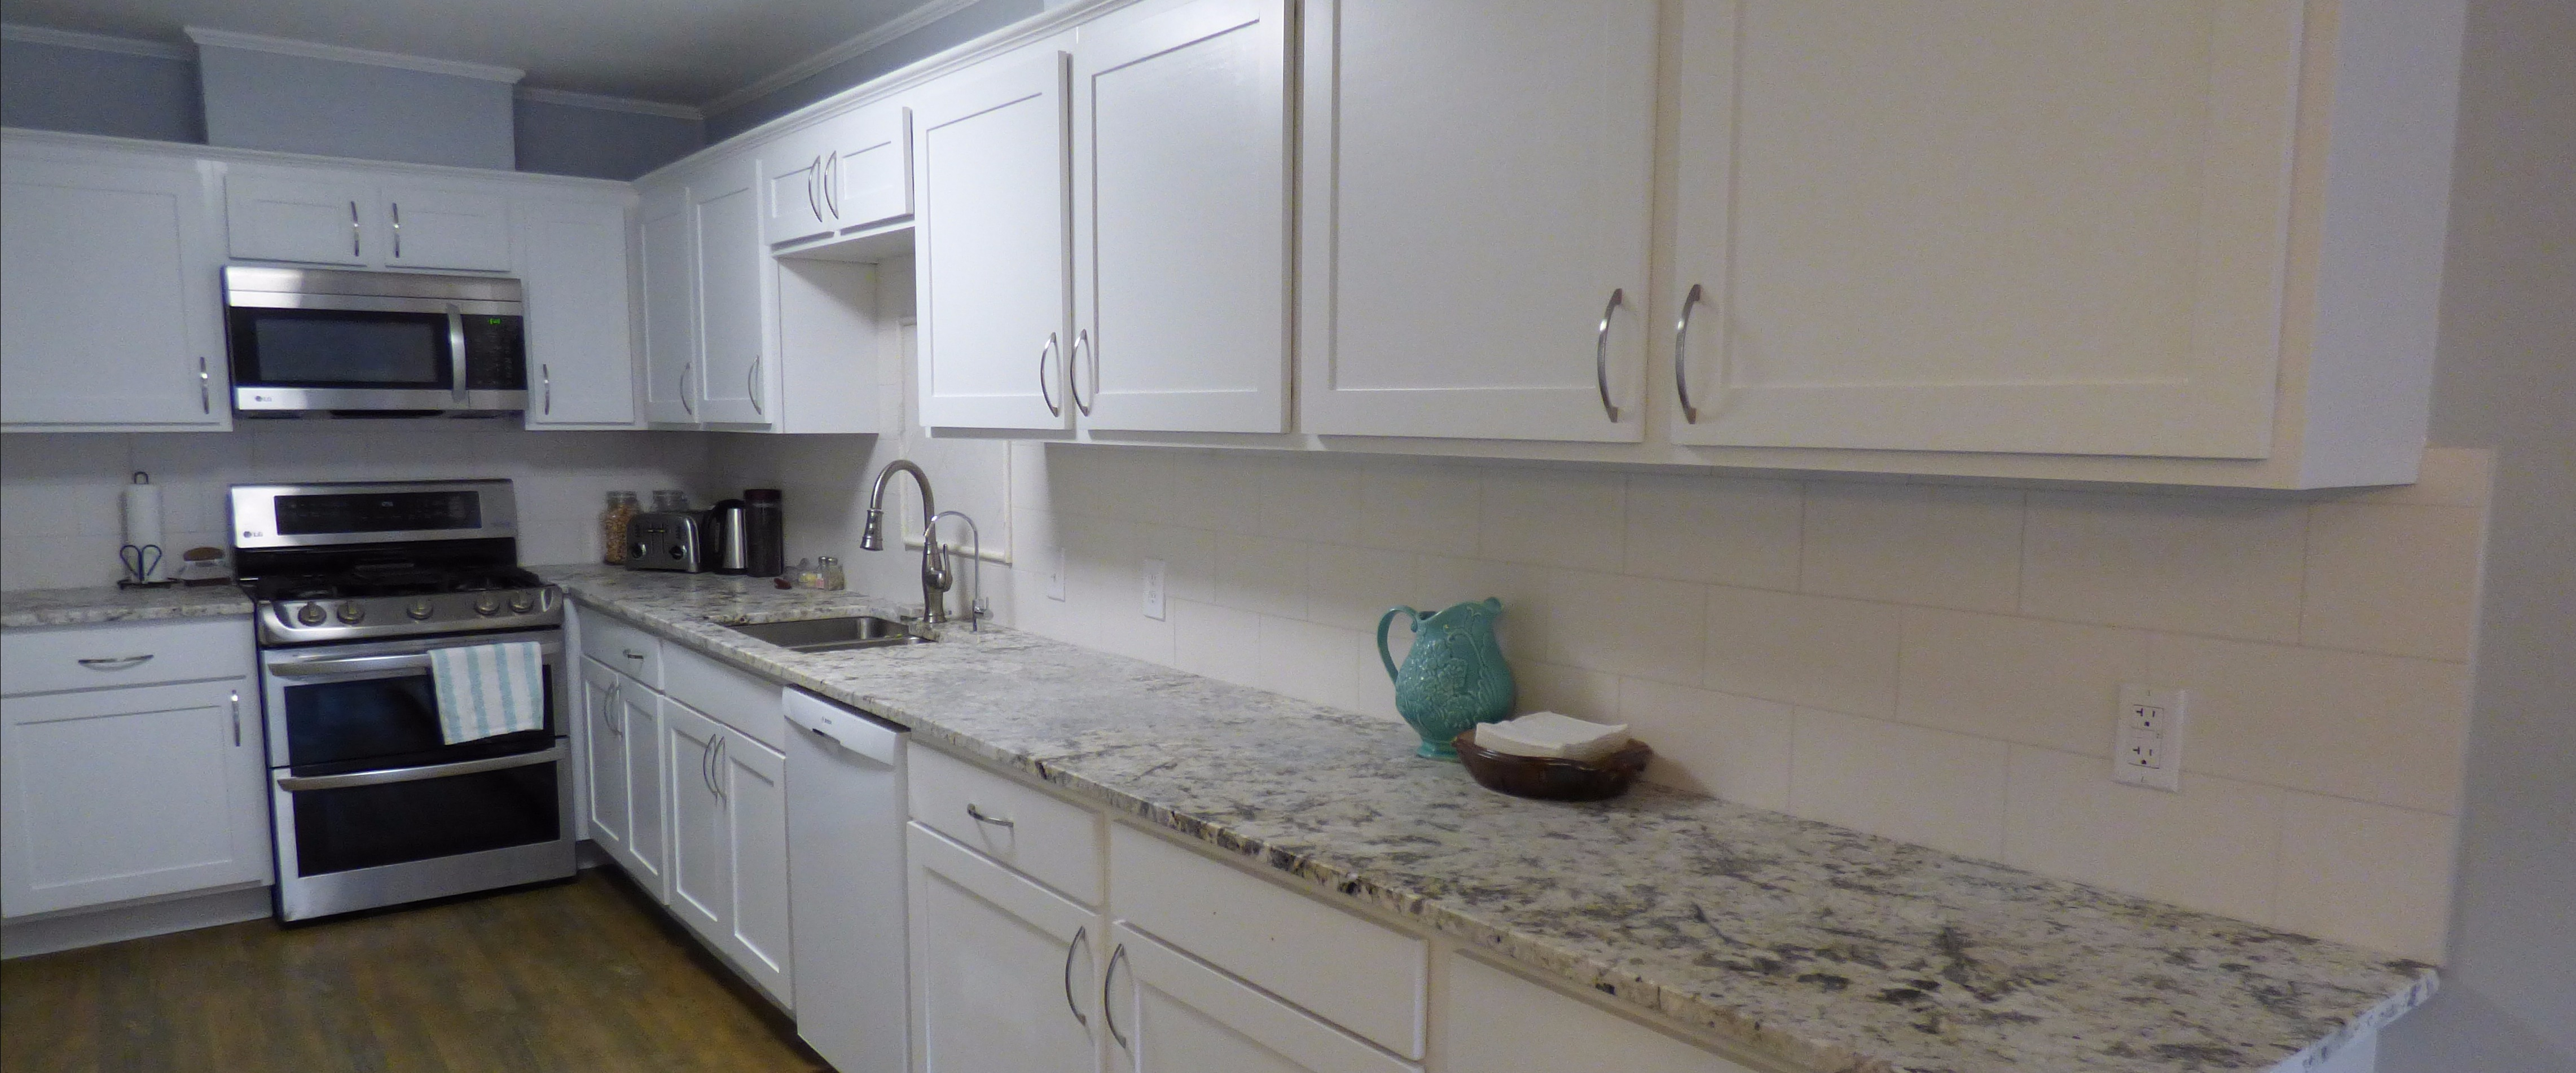 Remodeling Contractor Plano Houston The Woodlands Tx